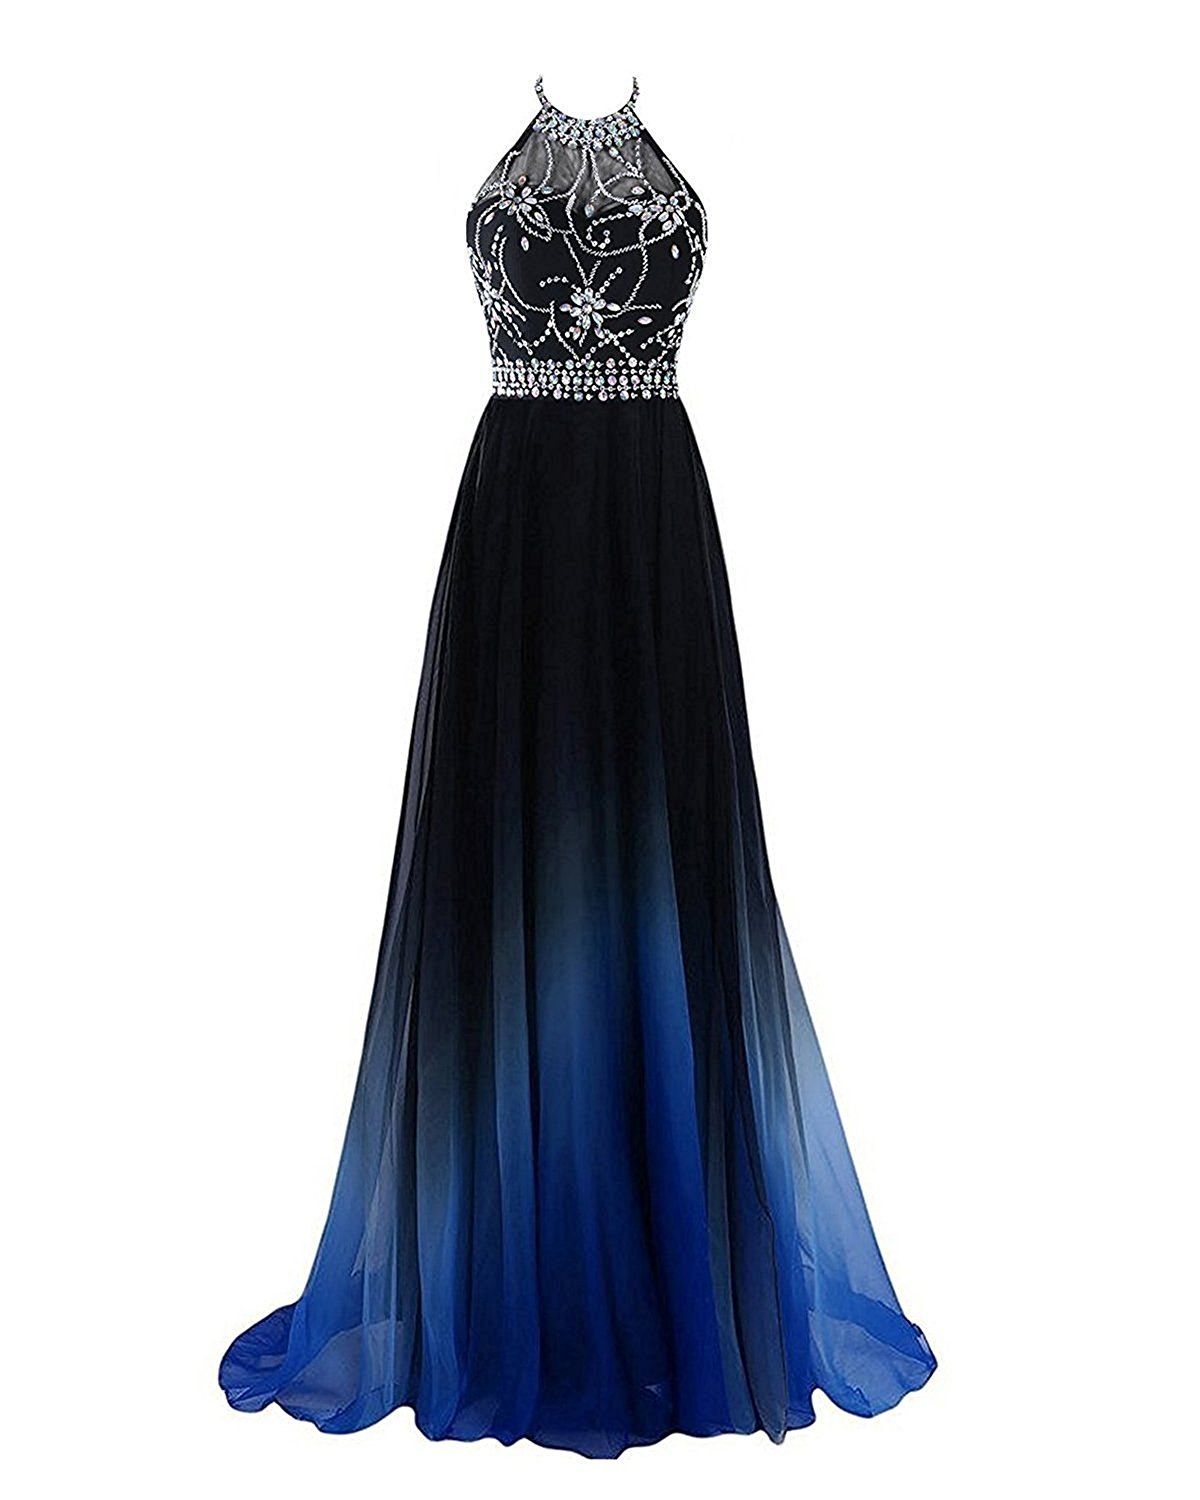 2019 Newest Sexy Halter Chiffon Long Gradient Evening Dresses With Lace Up Ombre Formal Prom Party Gown Vestido Longo AL24